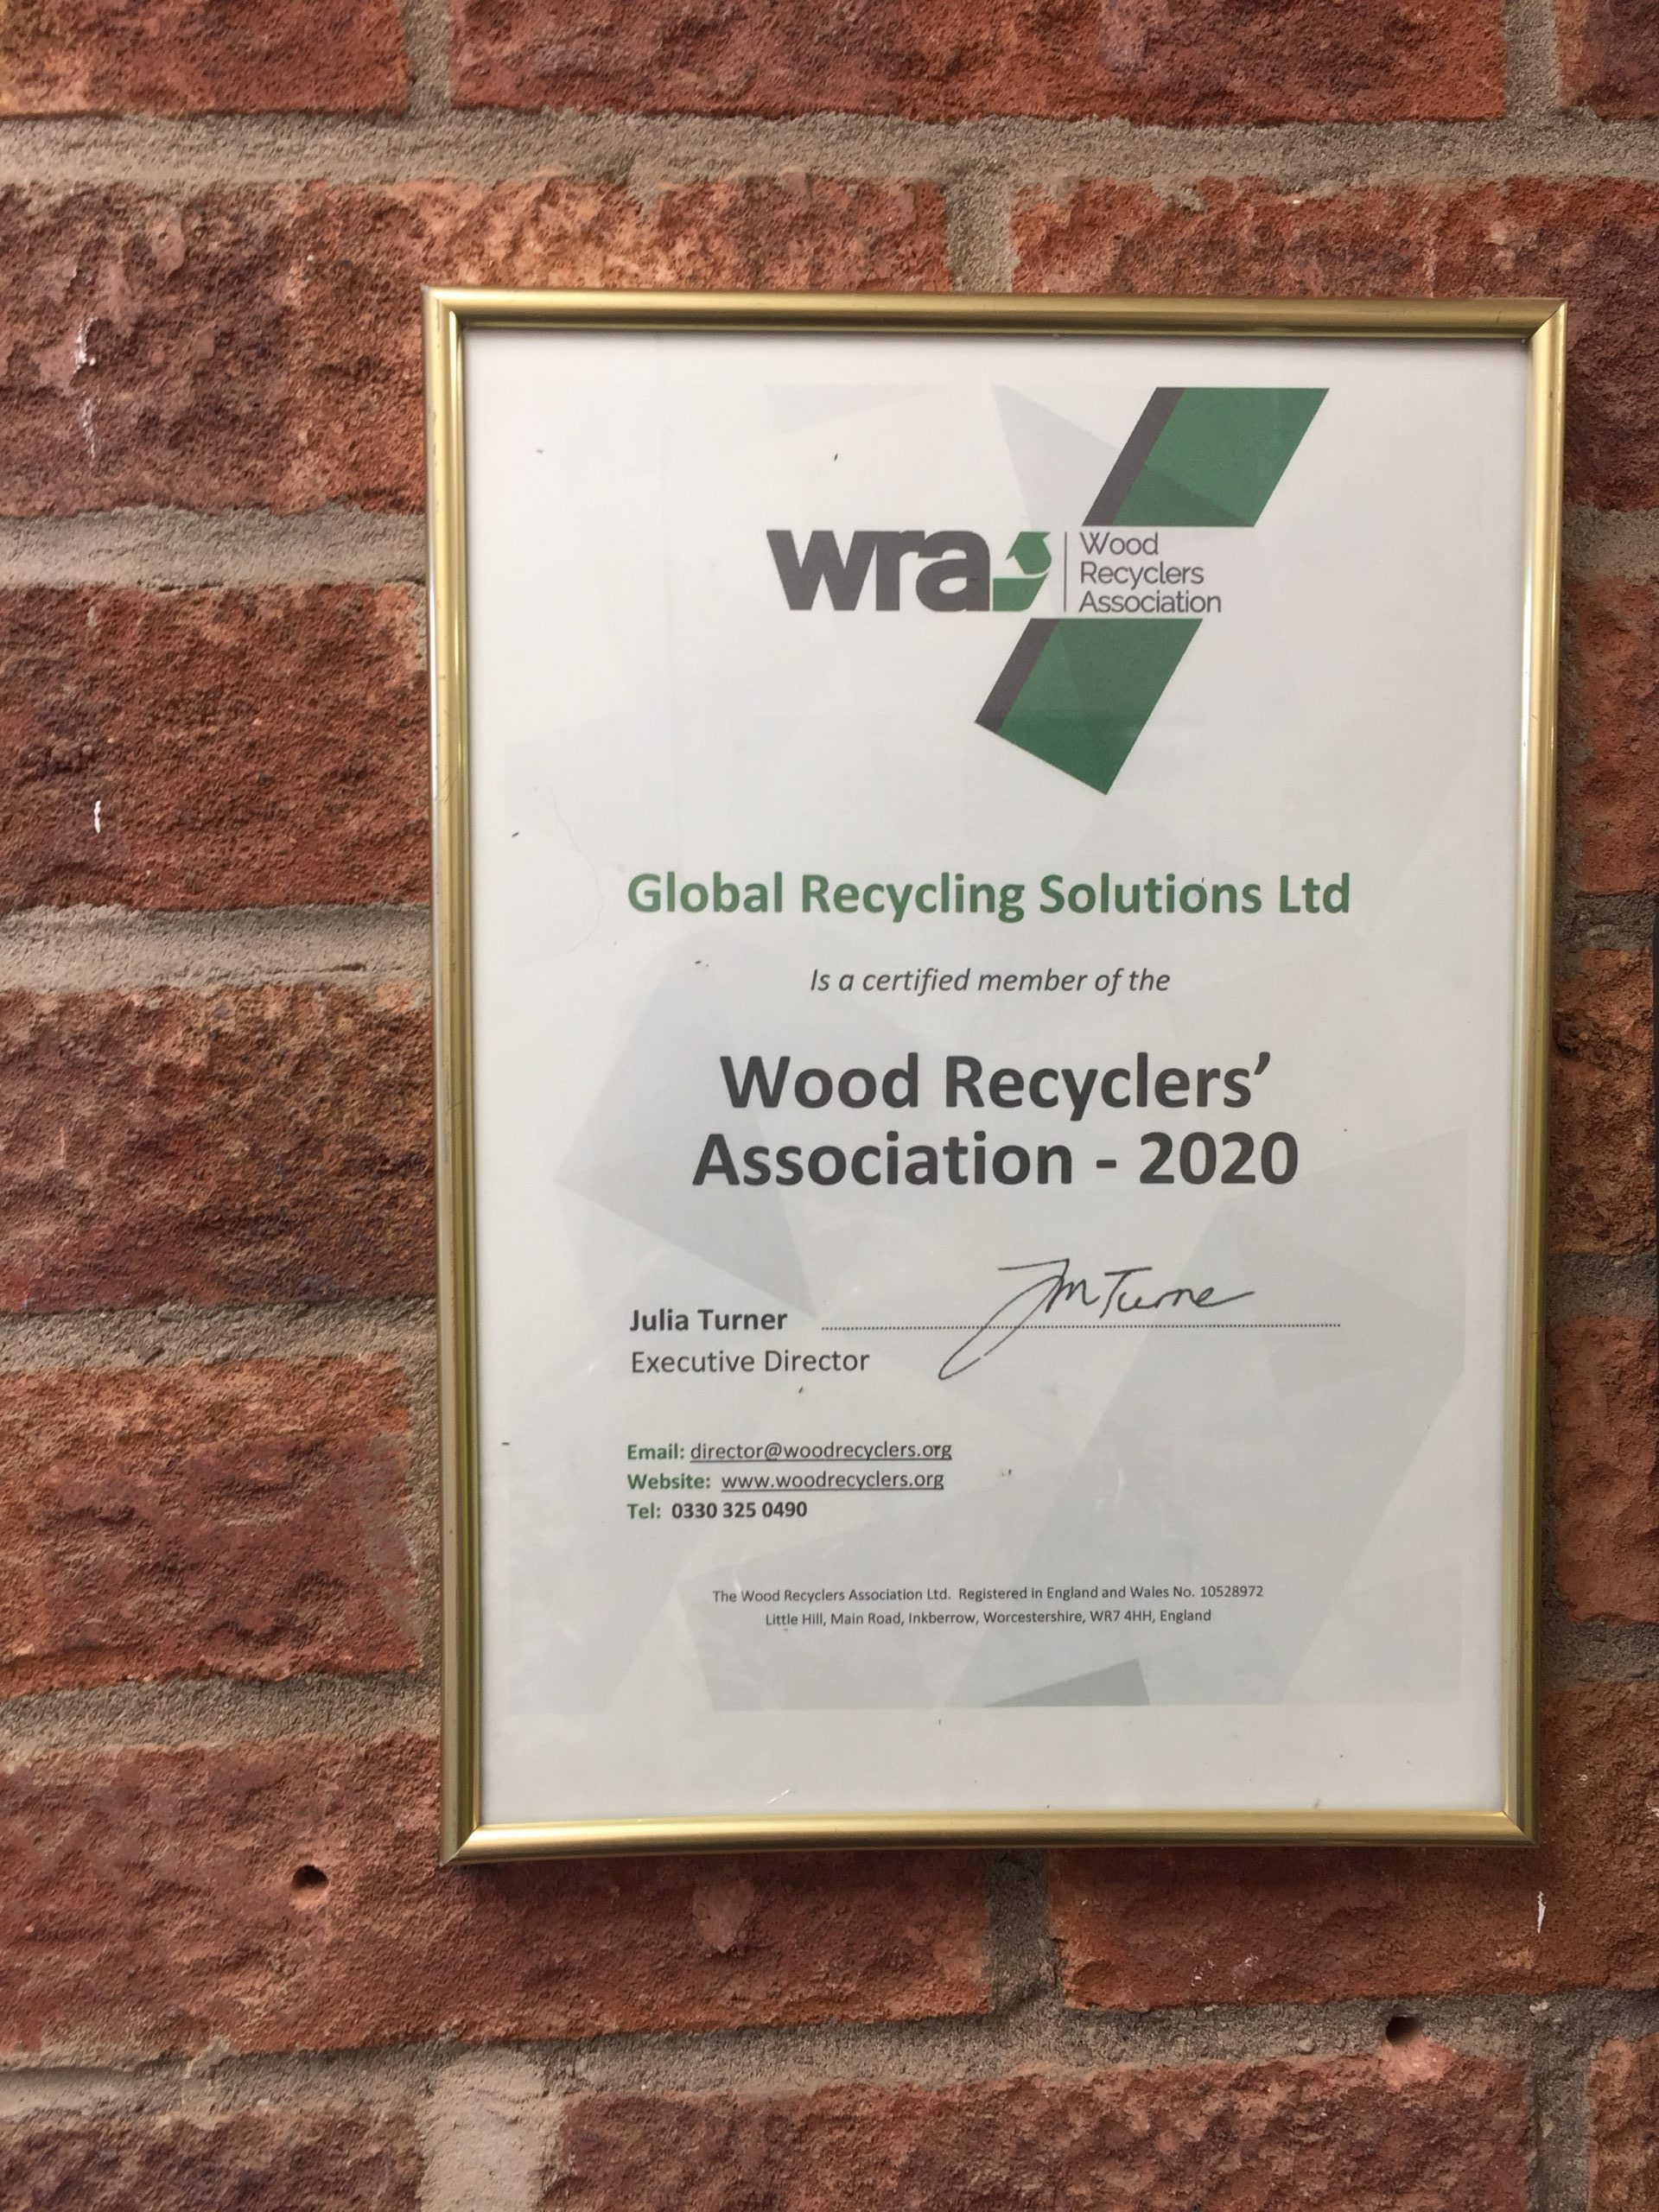 Wood Recyclers' Association – 2020